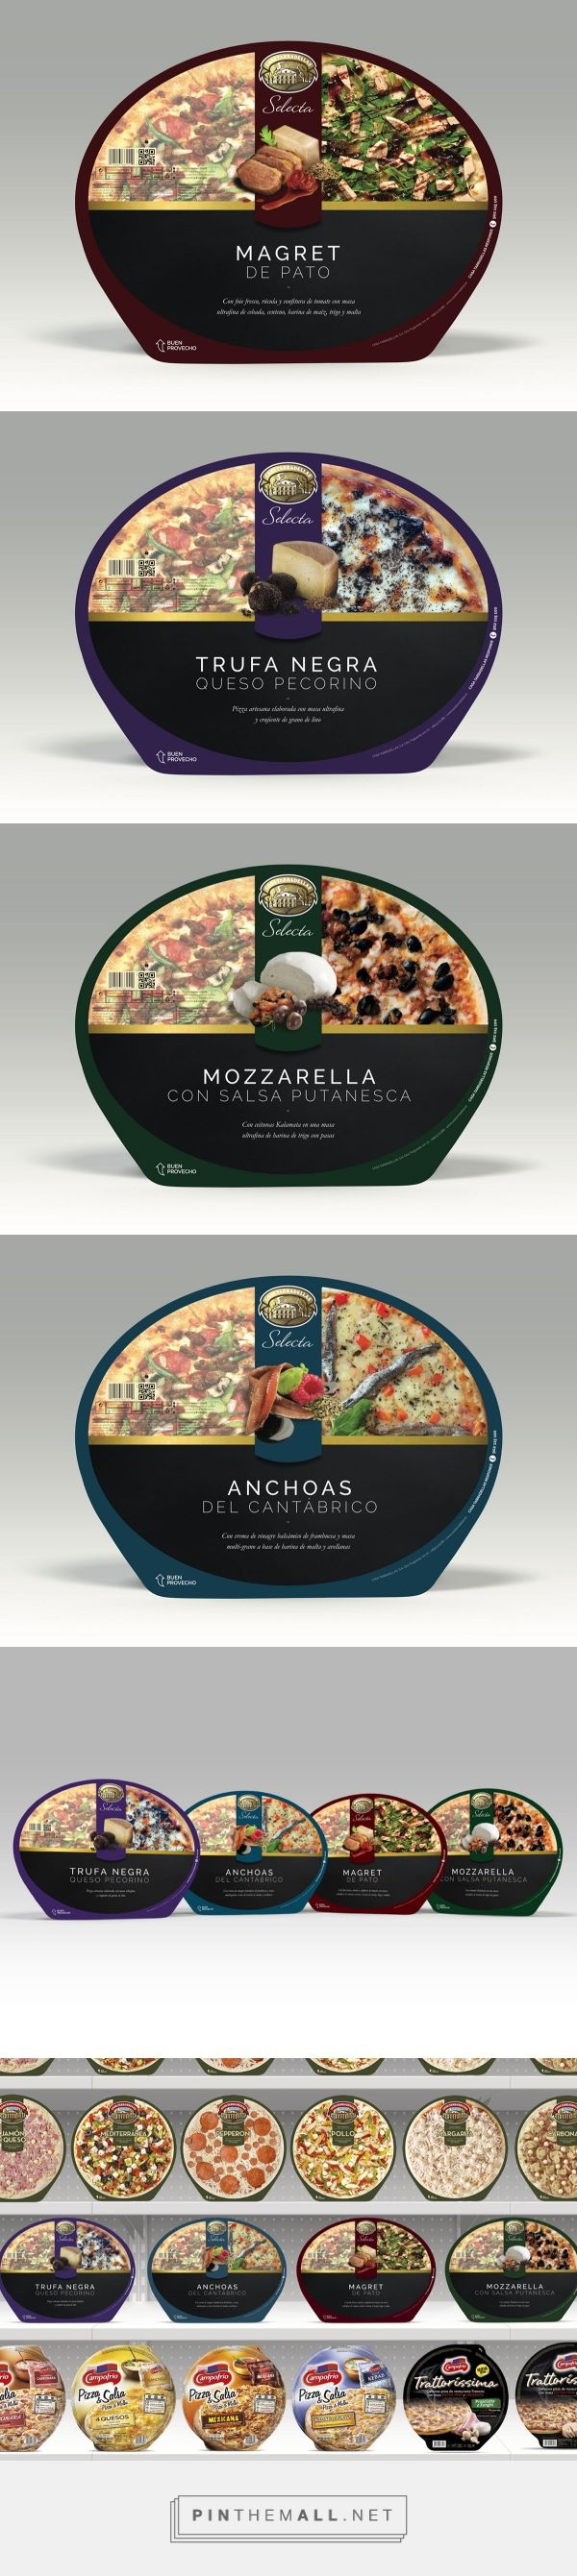 Selecta de Casa Tarradellas pizze (Student Project) by Andrea Ribera and Cristian Varela. Source: Behance. Pin curated by#SFields99 #packaging #design